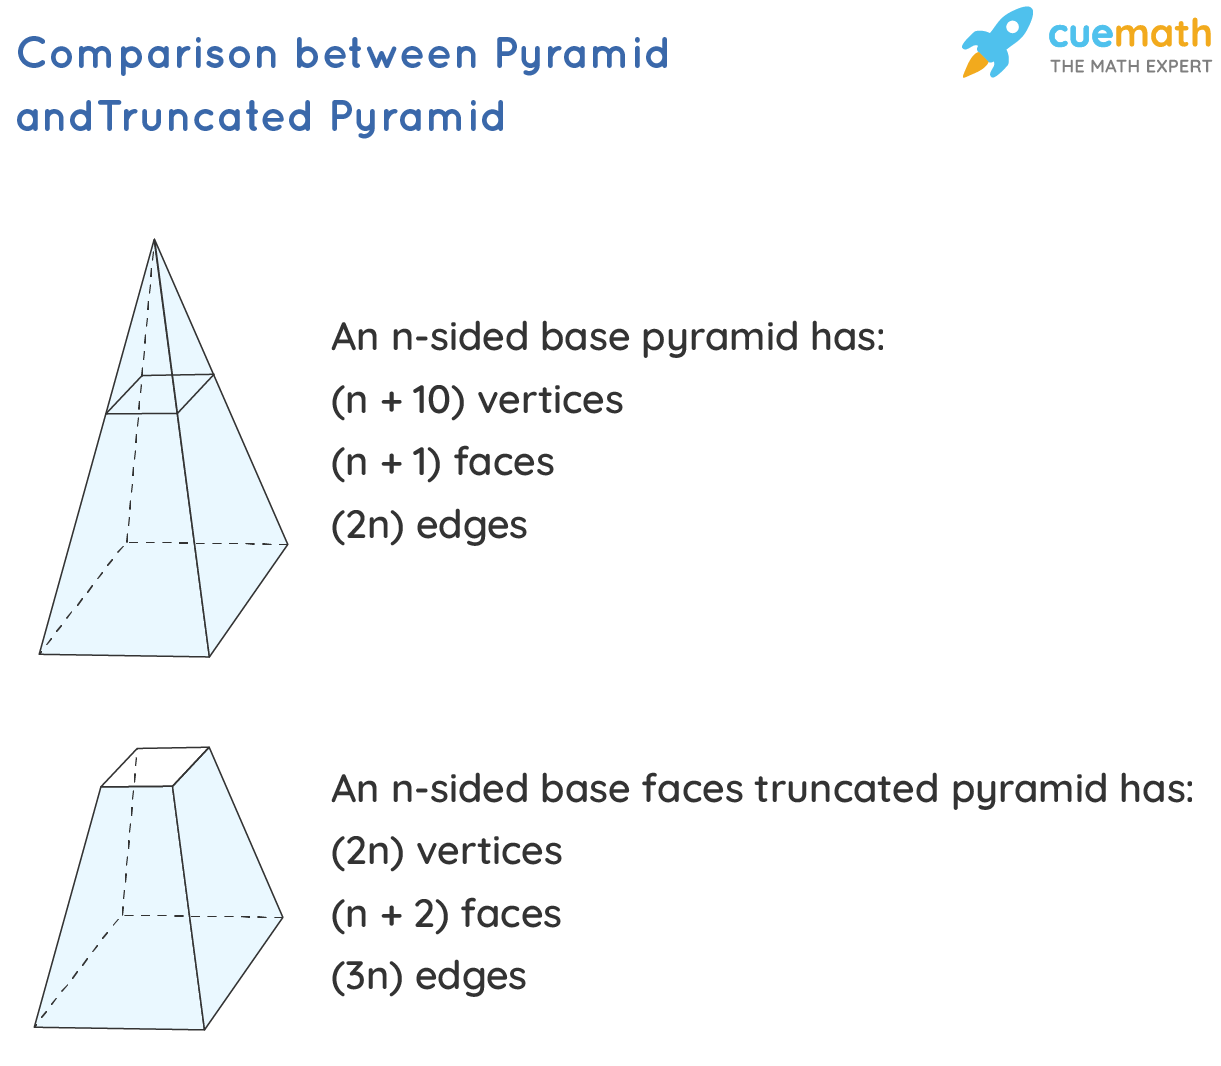 Volume of a Truncated Pyramid - Comparison